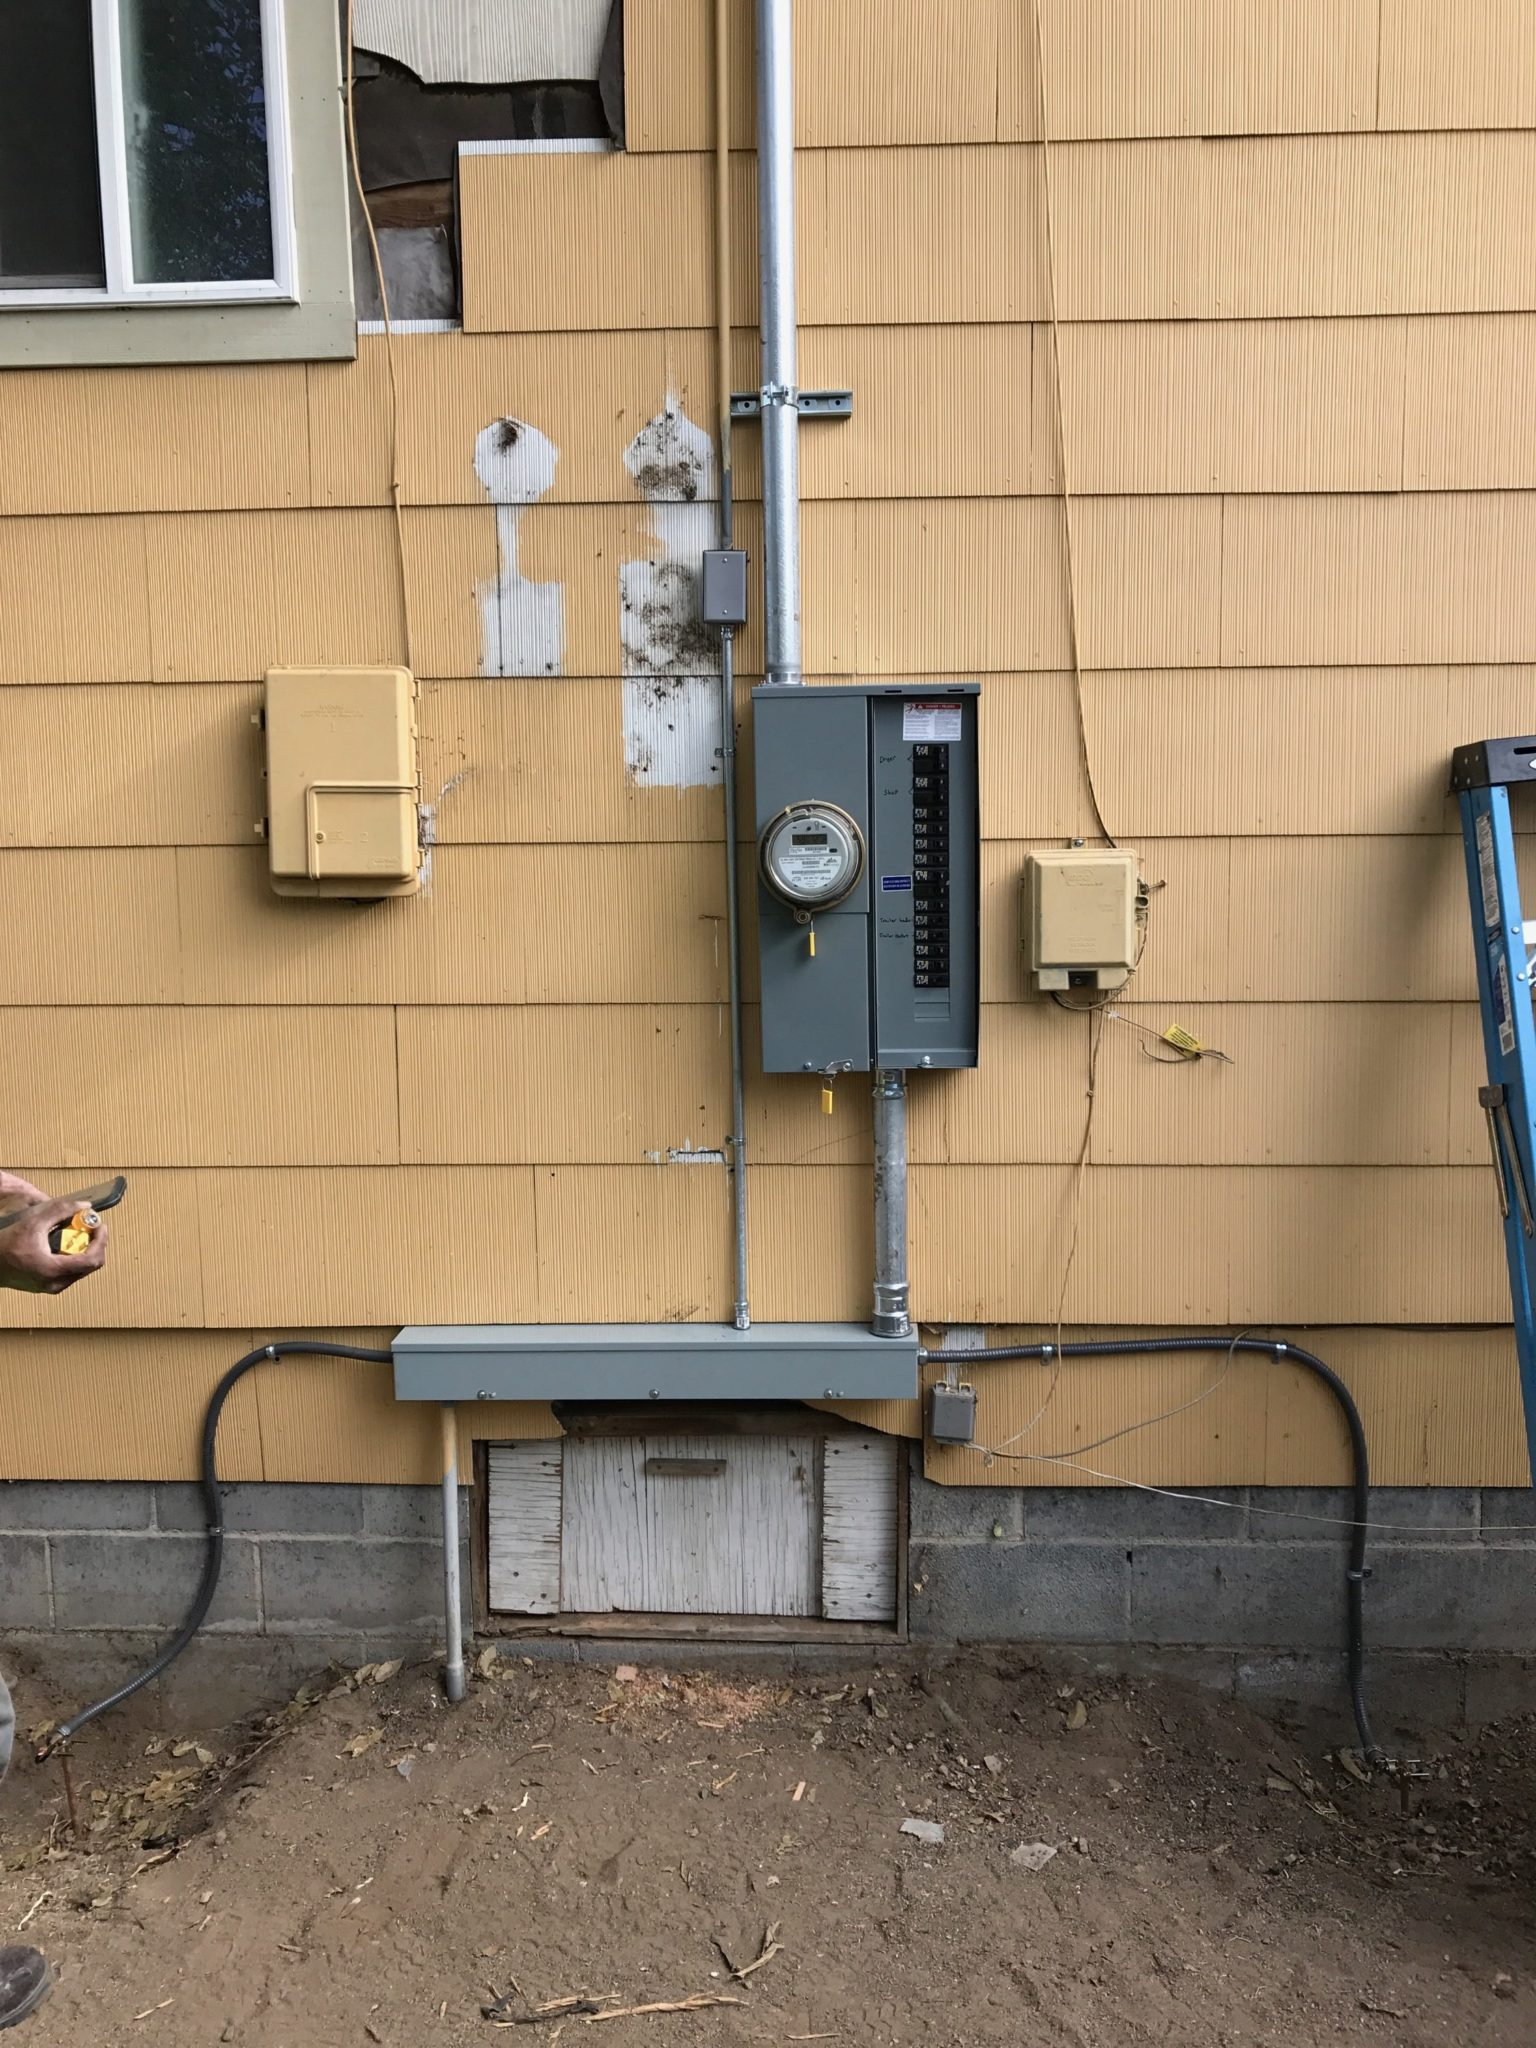 Panel replacements upgrades enhanced electrical services inc safety and efficiency are two big reasons our customers request an electrical panel upgrade an air conditioner today uses more power than an entire home solutioingenieria Image collections